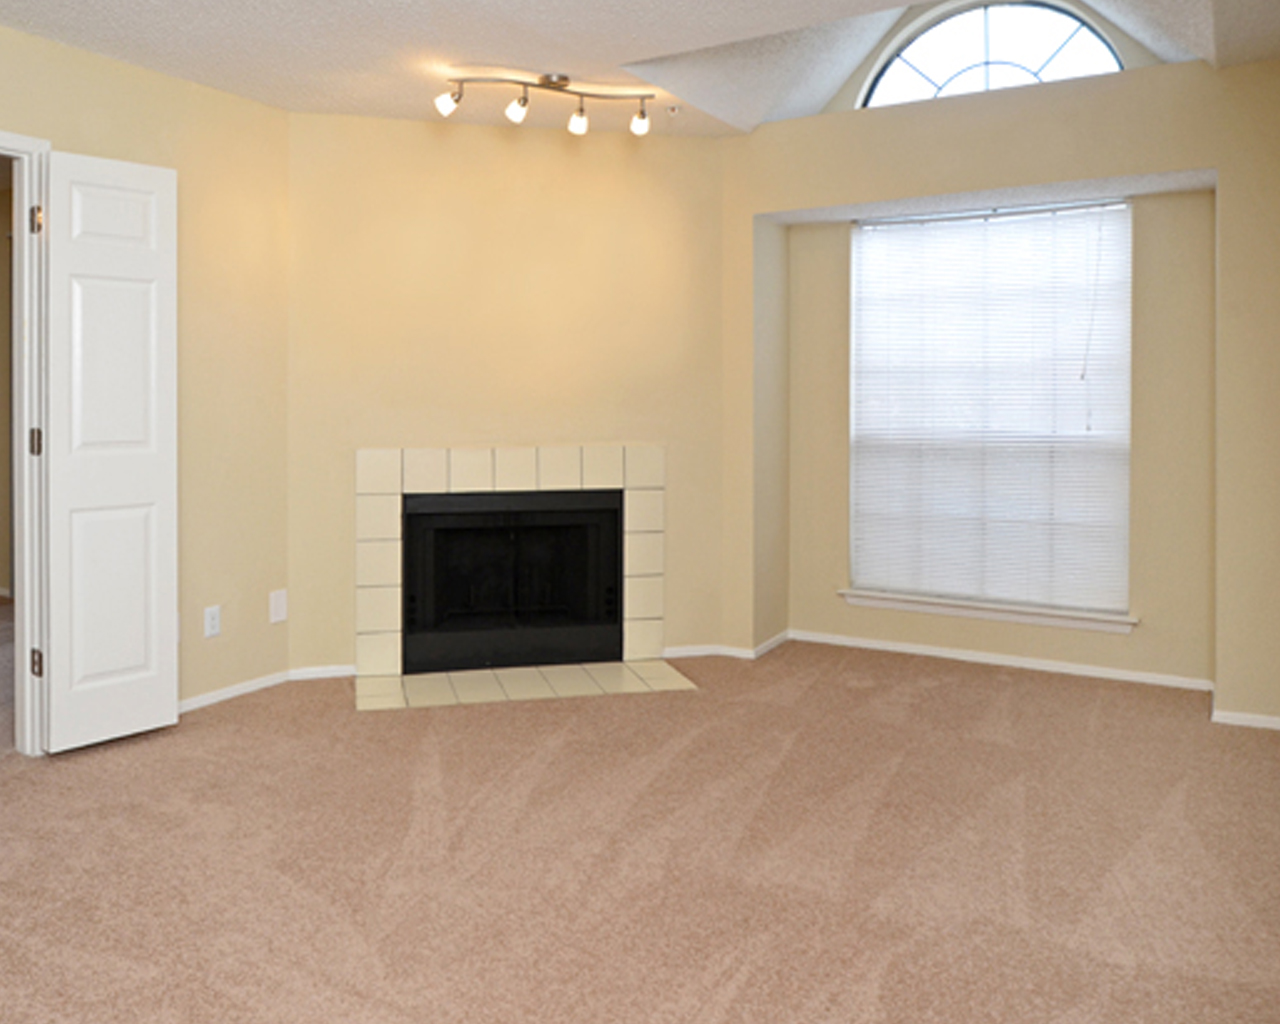 Forest Hills apartments floor plan with fireplace